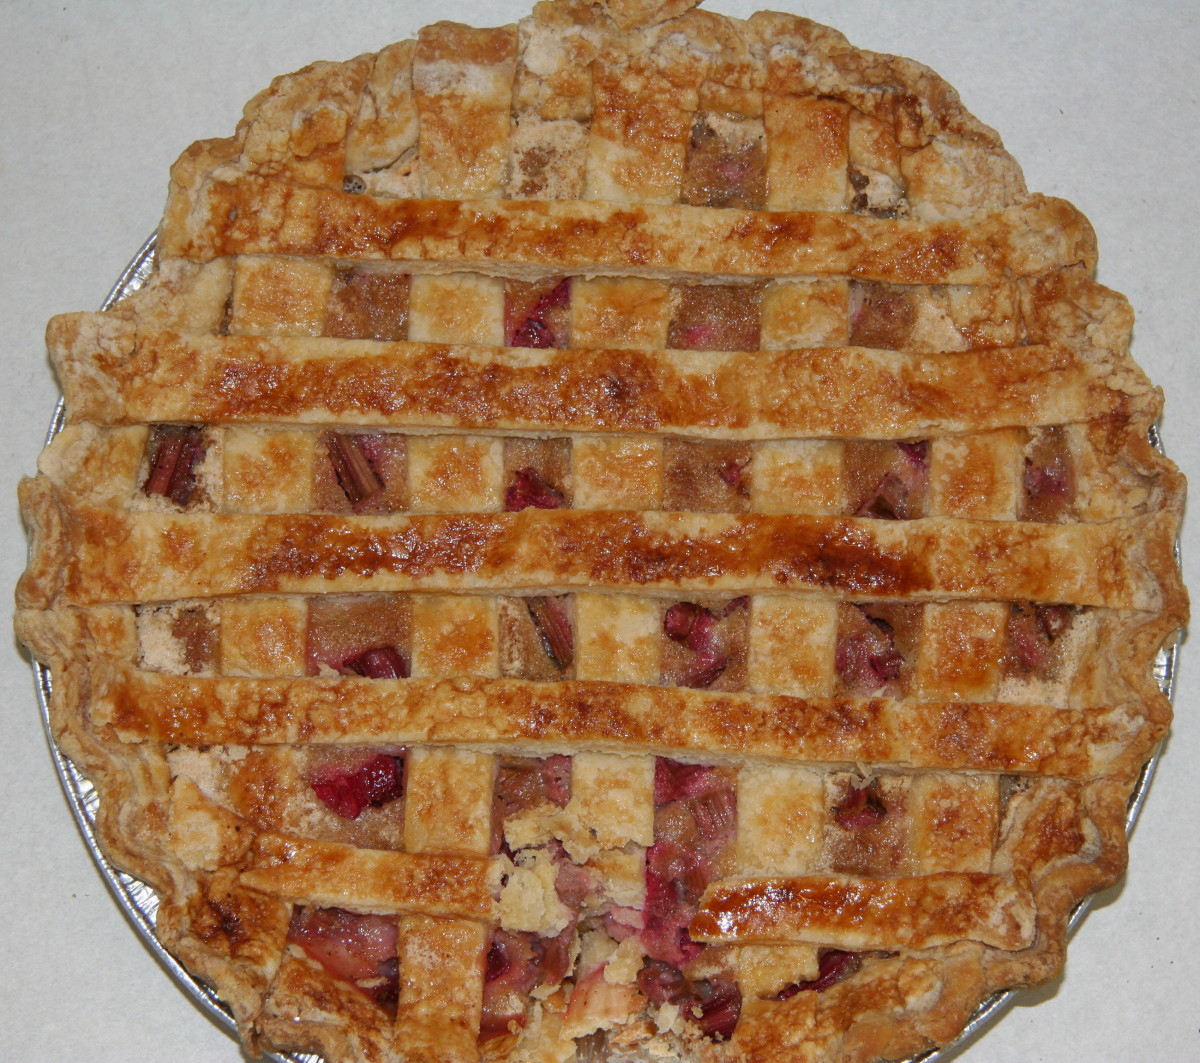 A perfect lattice crust rhubarb pie is a sign of spring.